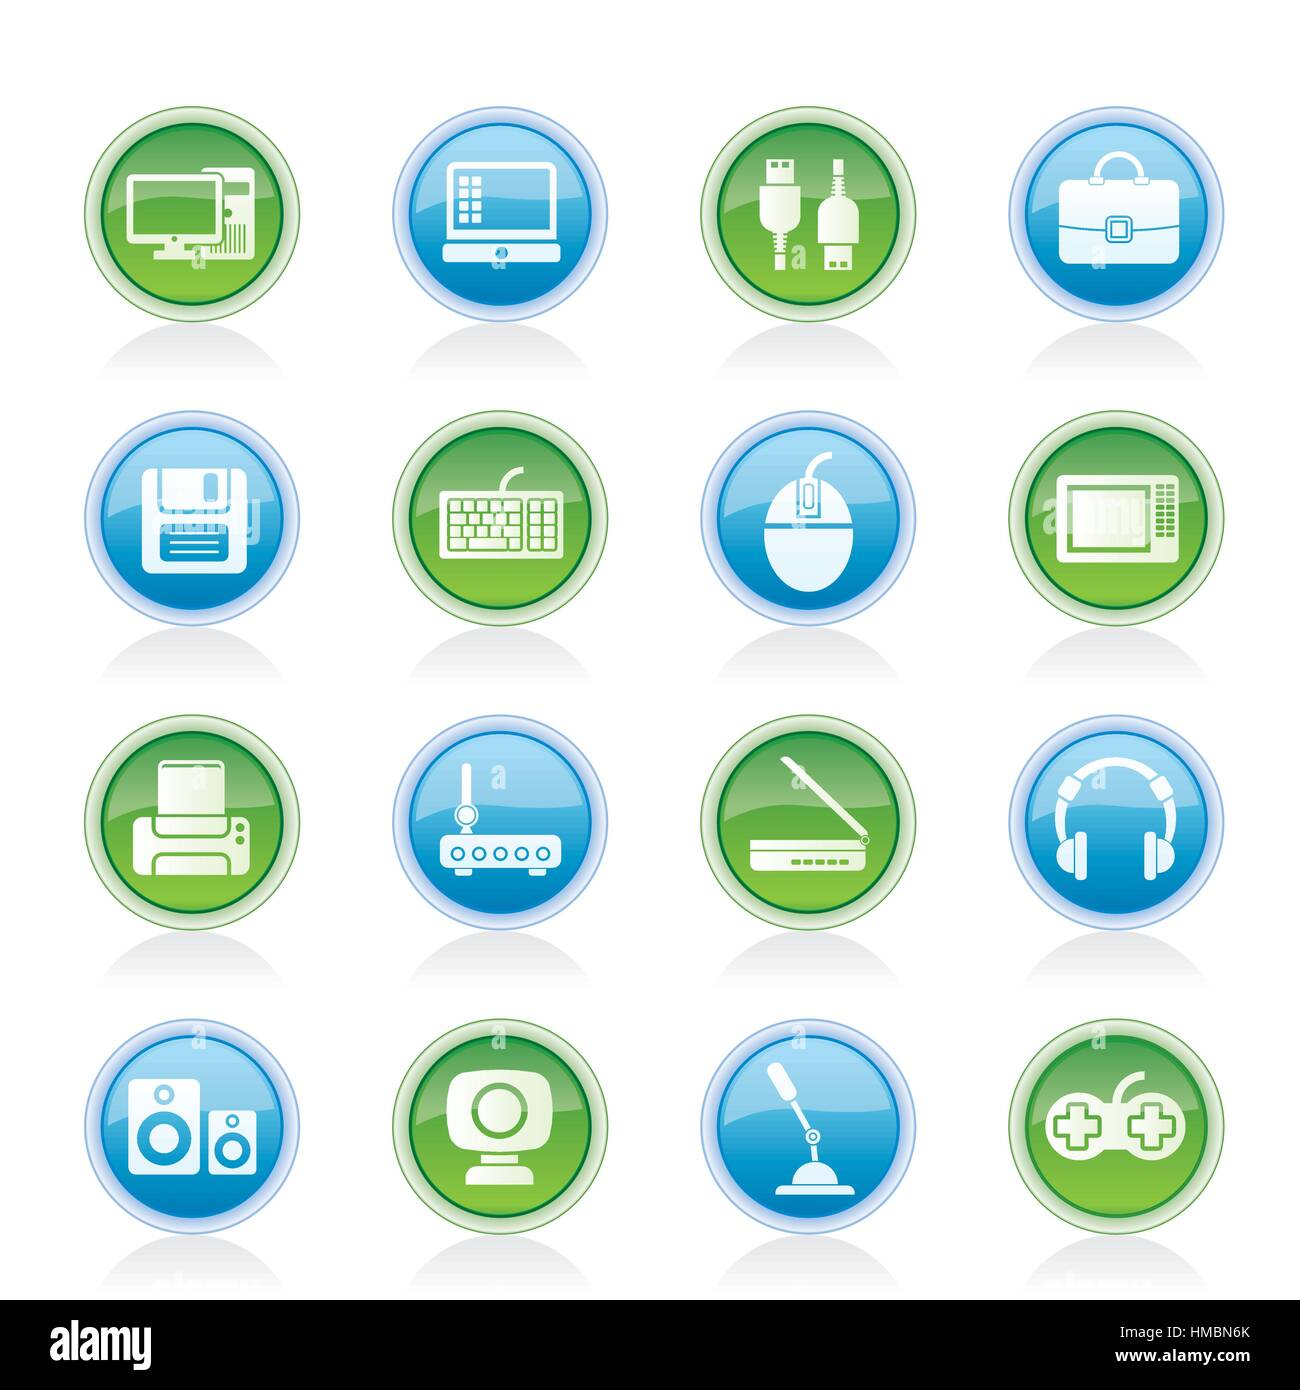 Computer equipment and periphery icons - Stock Image